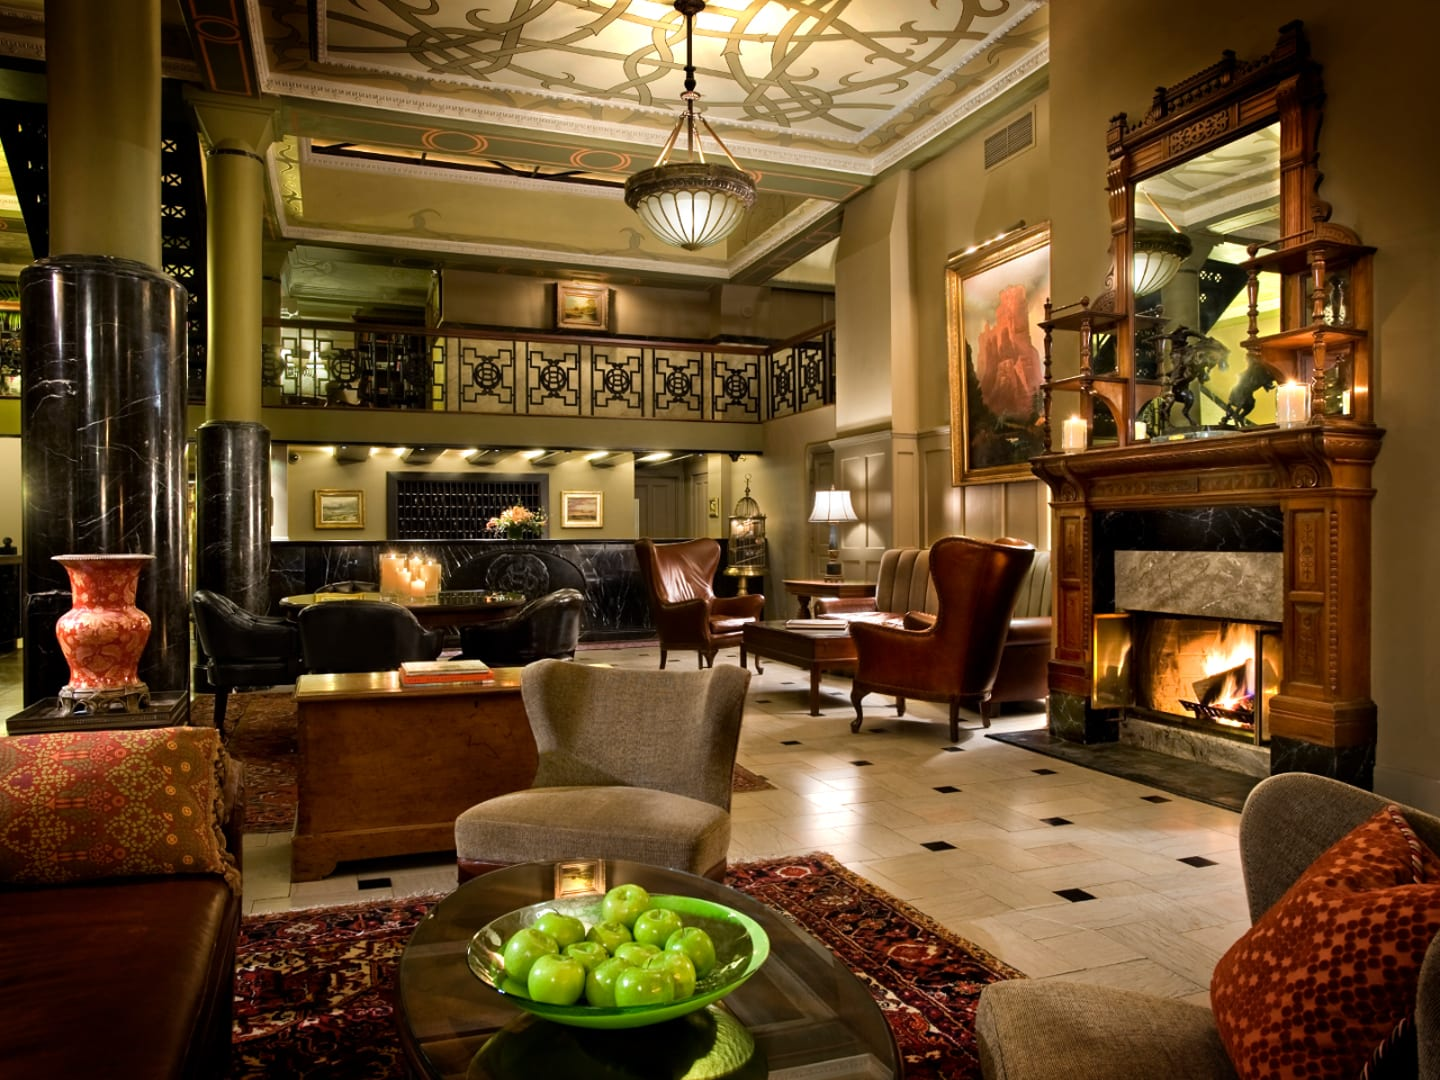 Oxford Hotel Lobby Denver Colorado